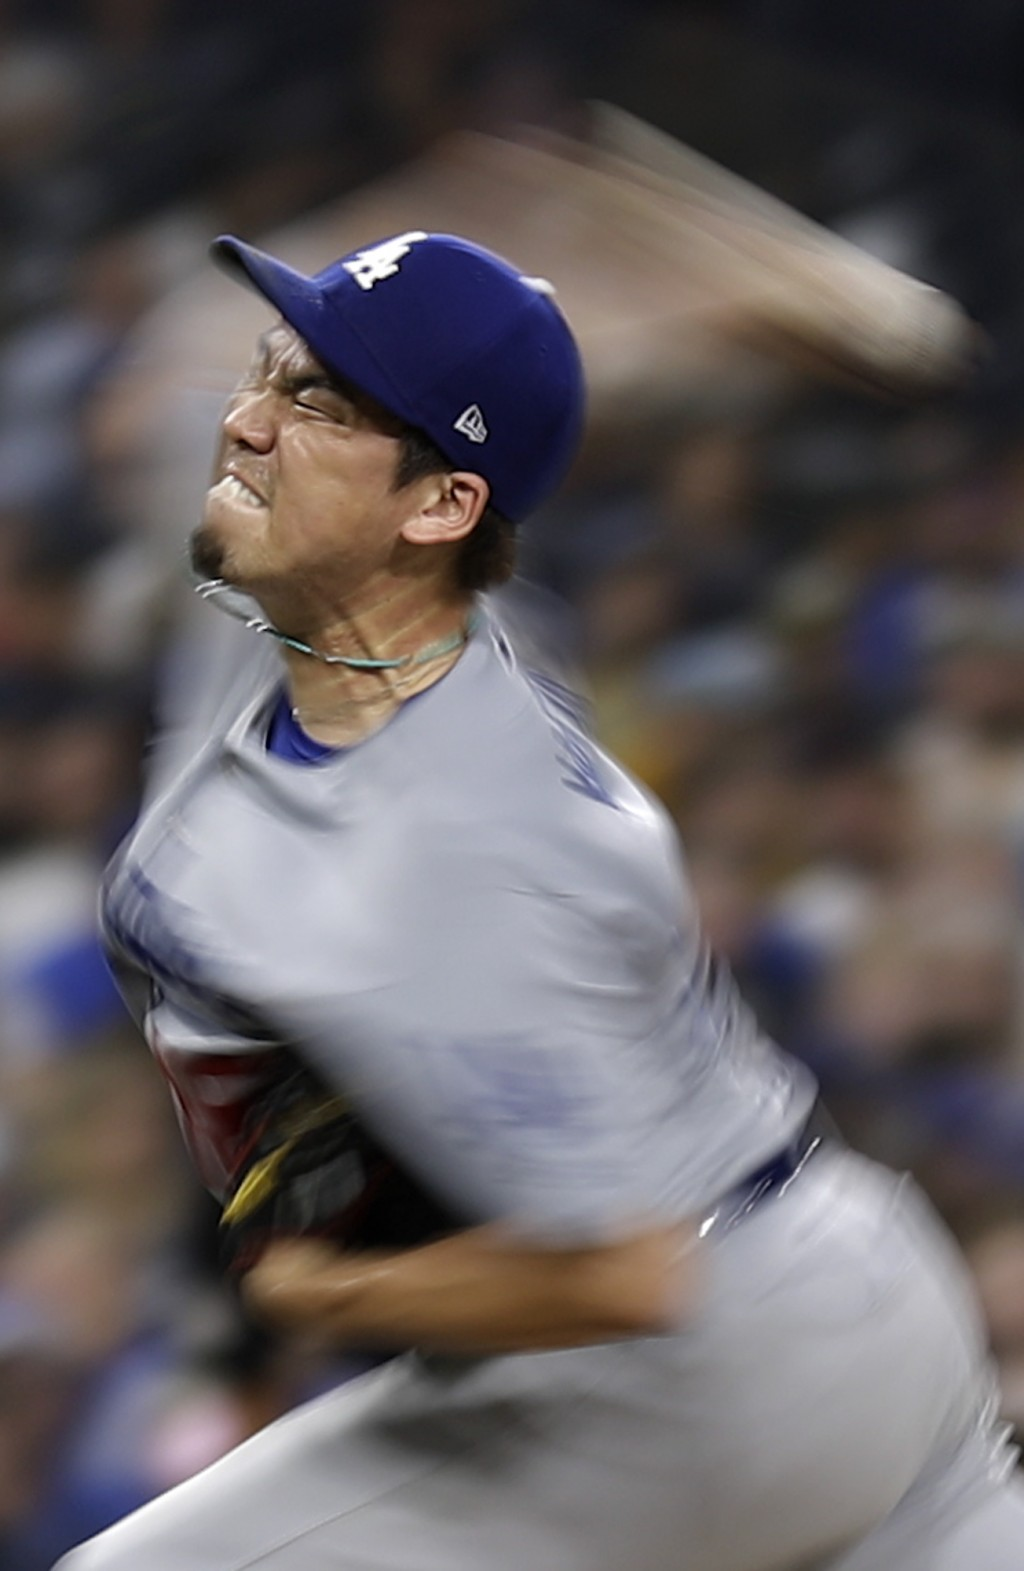 Los Angeles Dodgers starting pitcher Kenta Maeda works against a San Diego Padres batter during the fourth inning of a baseball game Wednesday, July 1